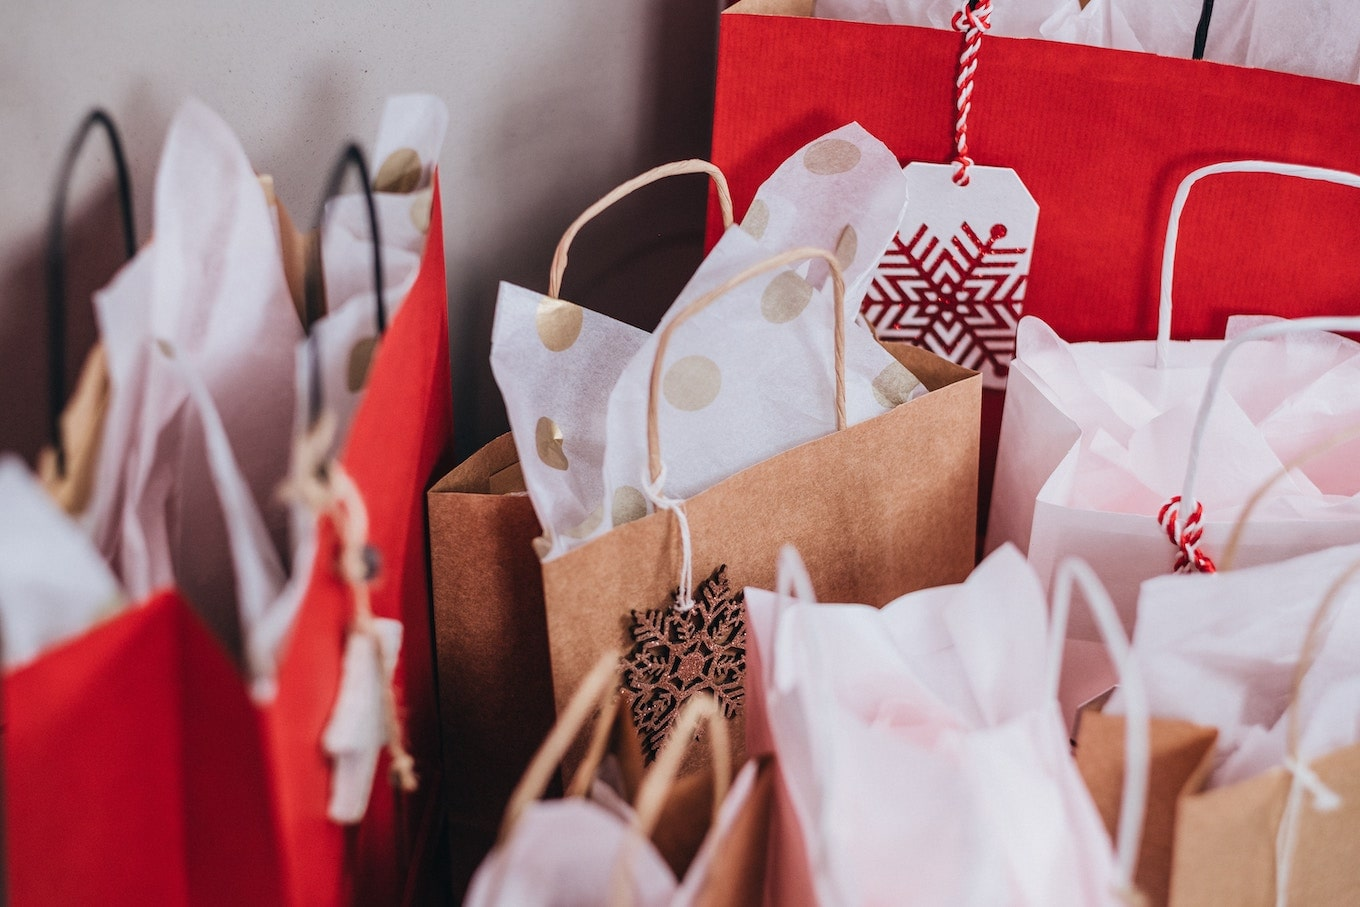 Group of holiday gift bags